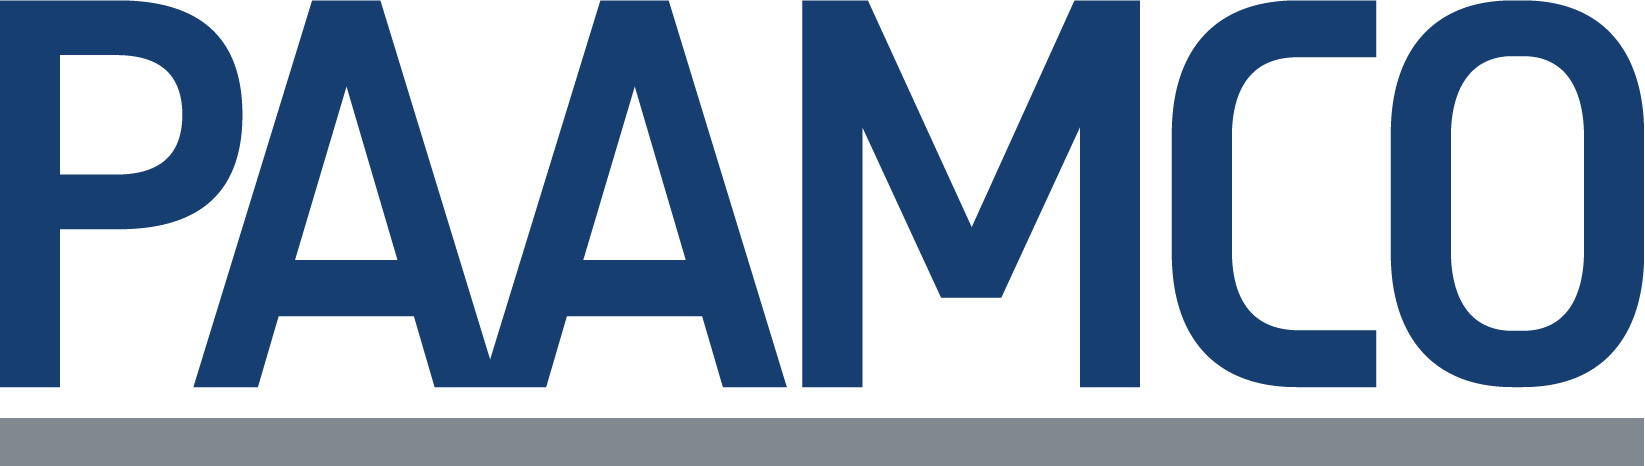 PAAMCO Logo.png